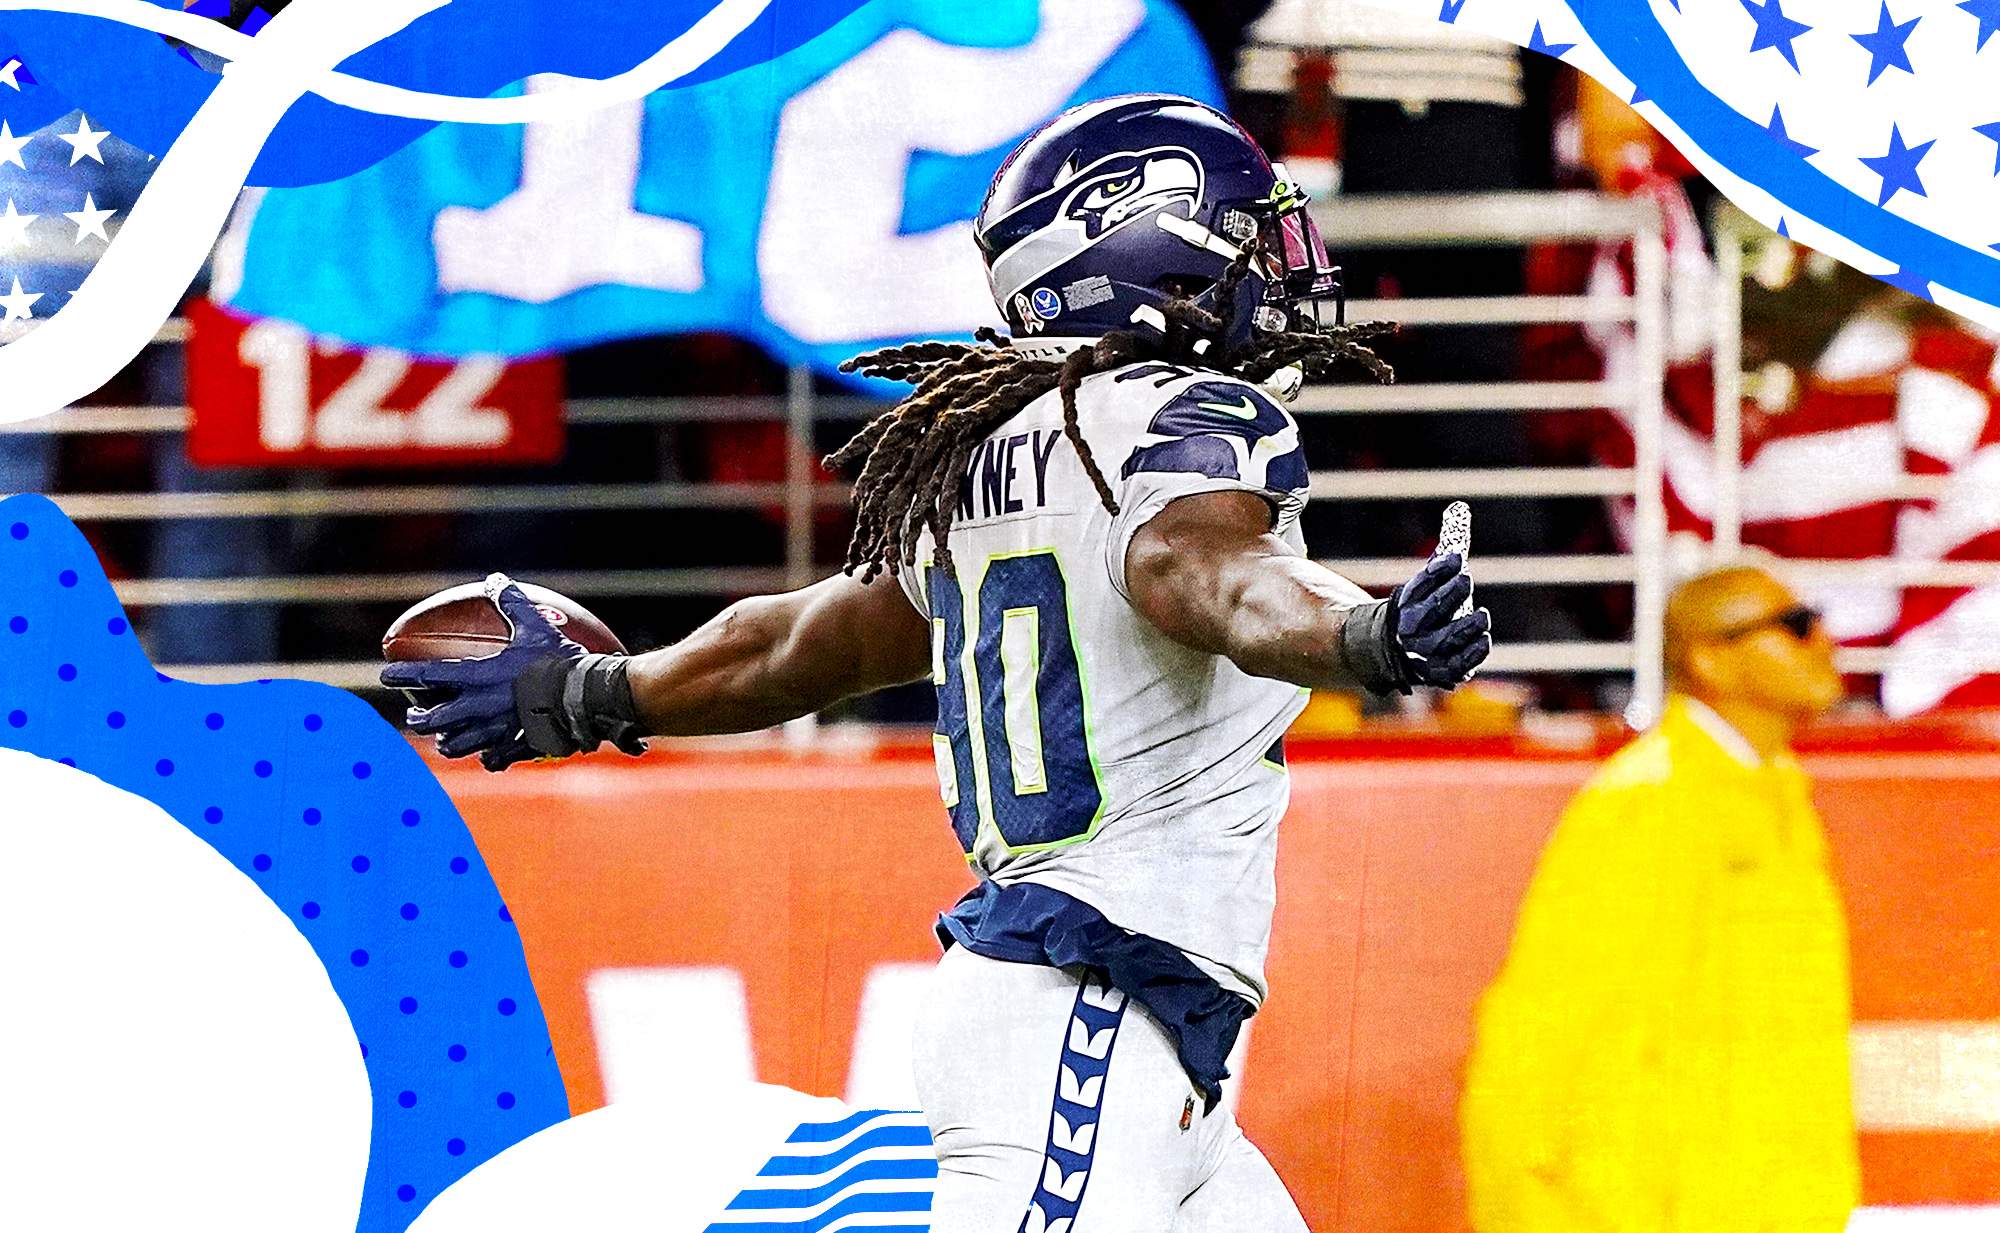 Seahawks pass rusher Jadeveon Clowney holding his arms out after scoring a touchdown vs. the 49ers